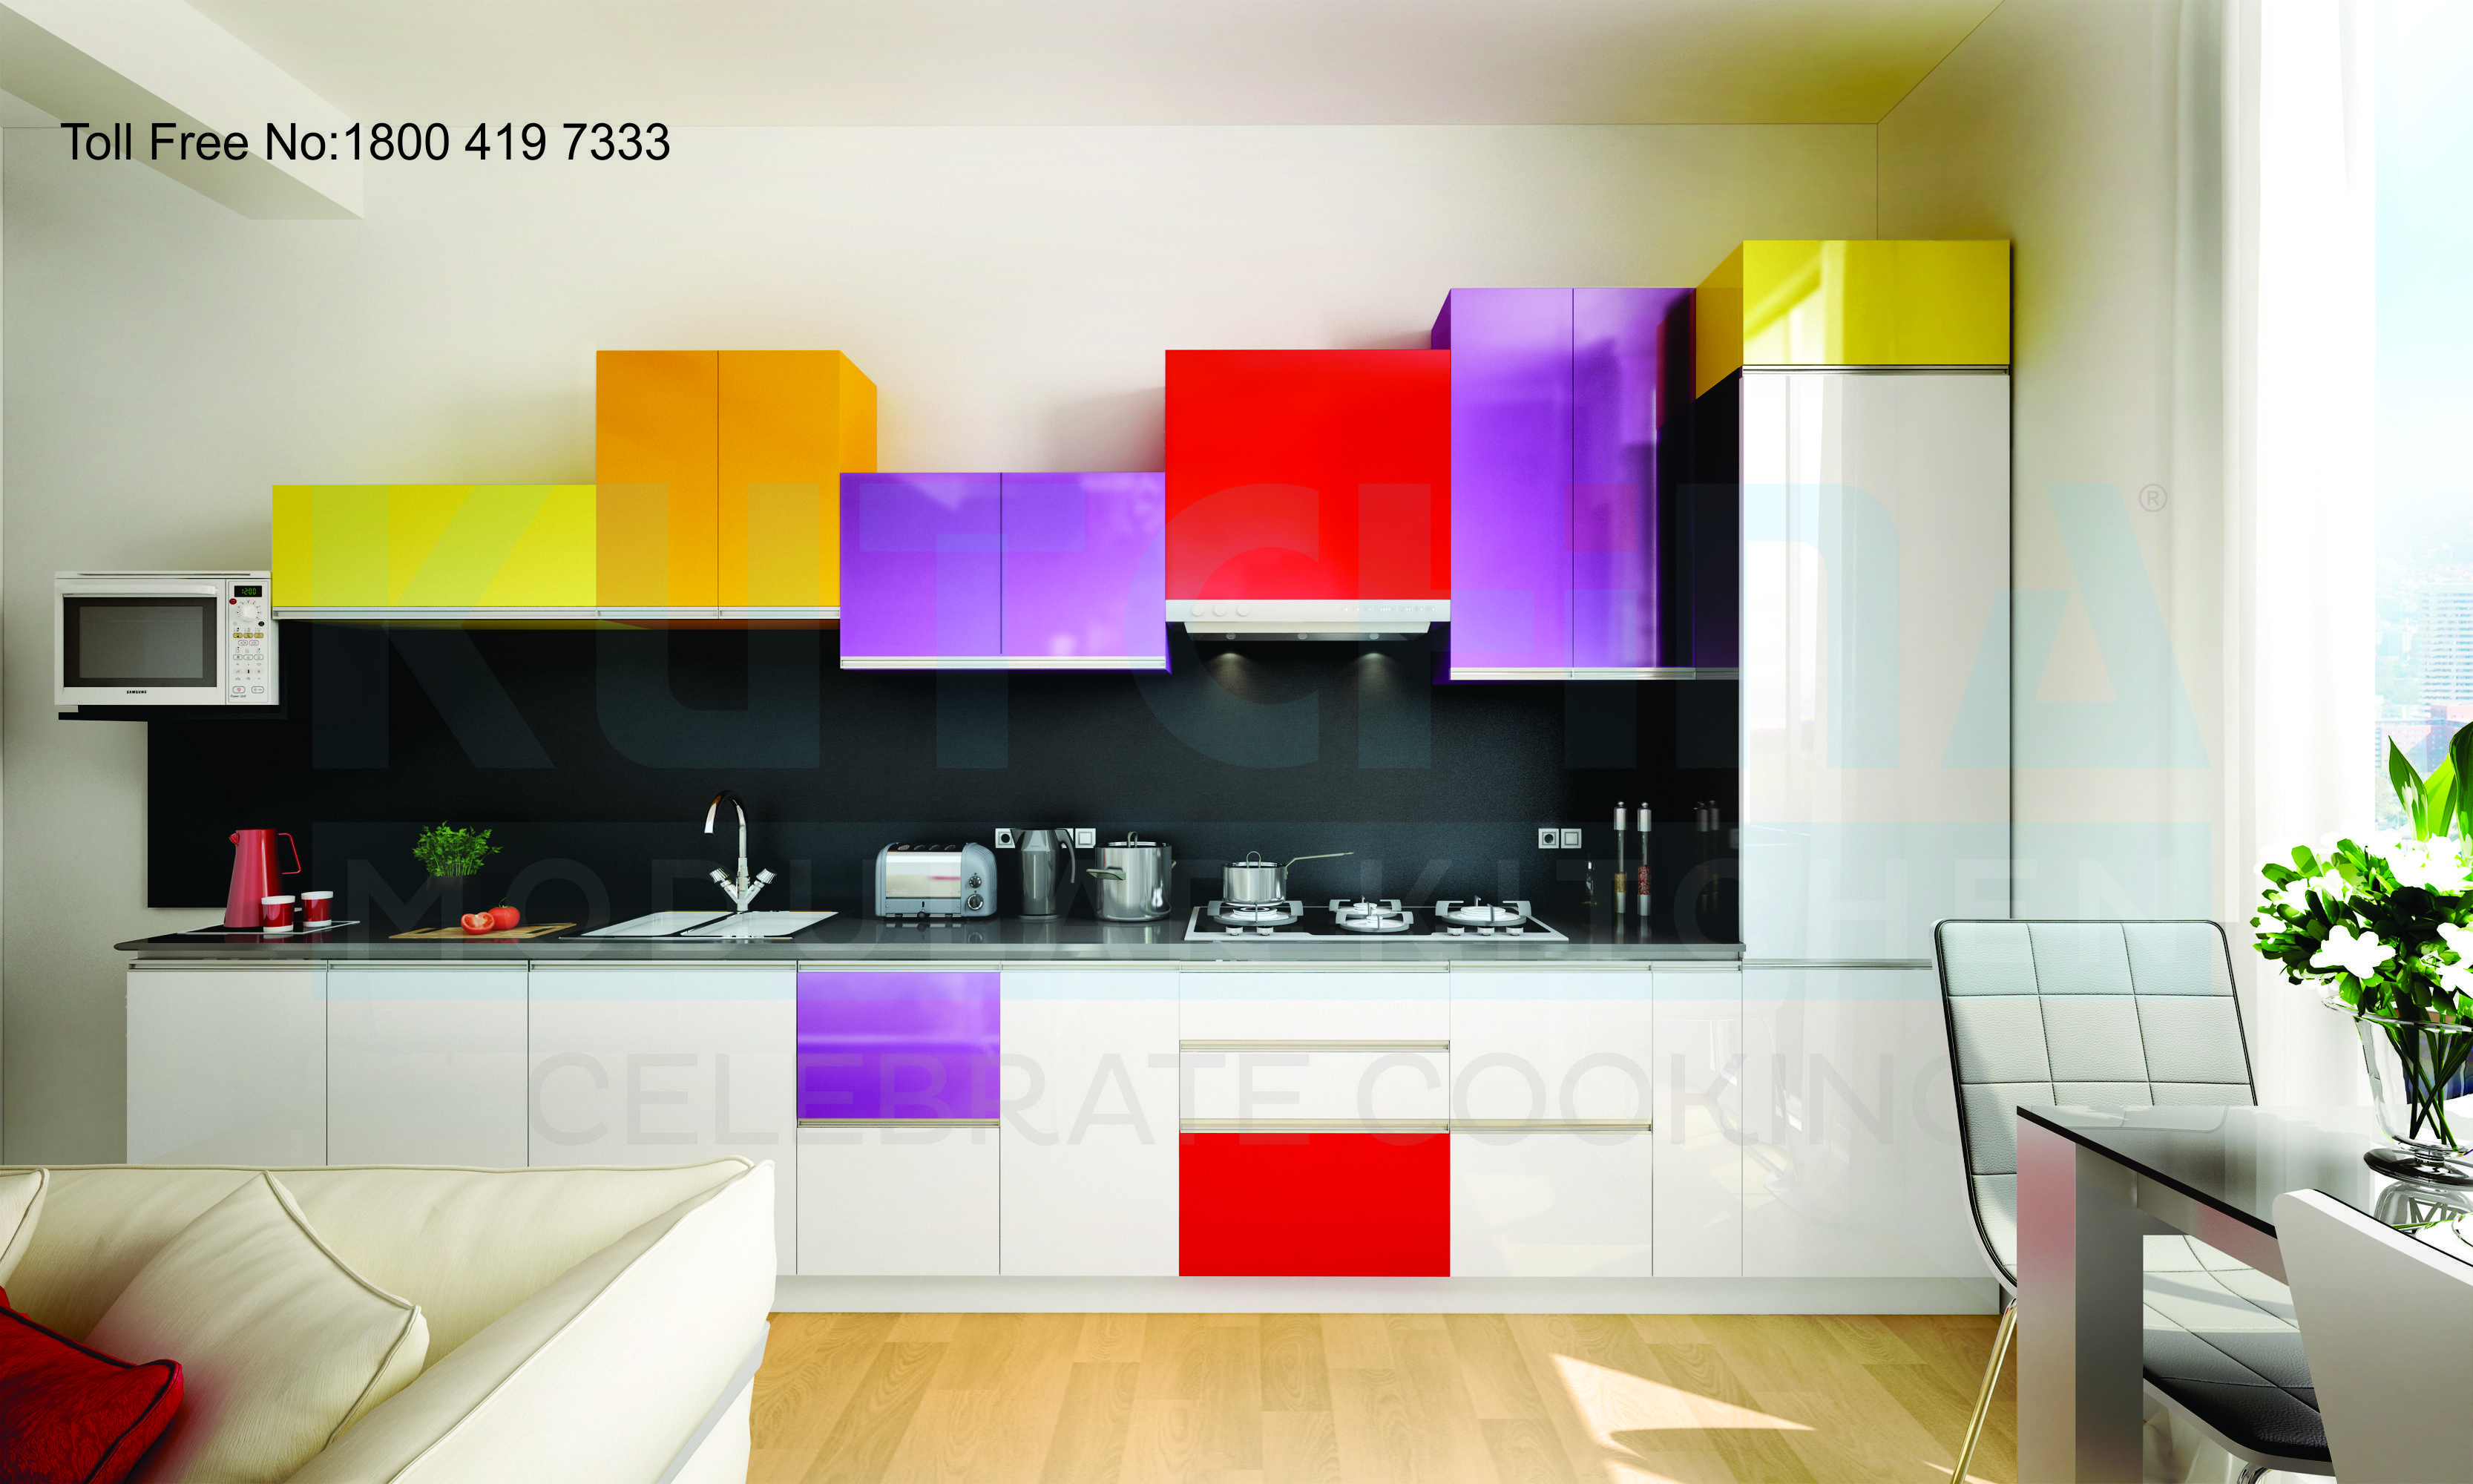 Cucina Ikea Tingsryd Jarsta Kutchina Modular Kitchens Comes With Latest Design And Durable